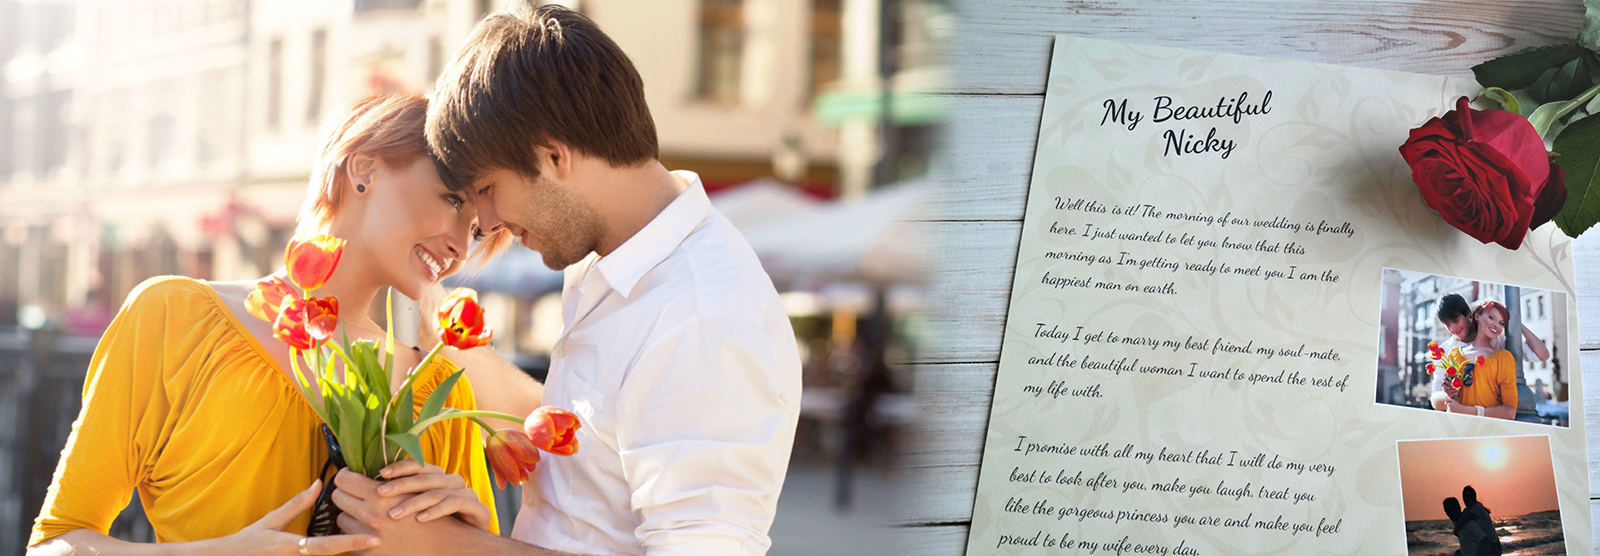 Home - Photo-Love-Letter - personalised romantic gifts for